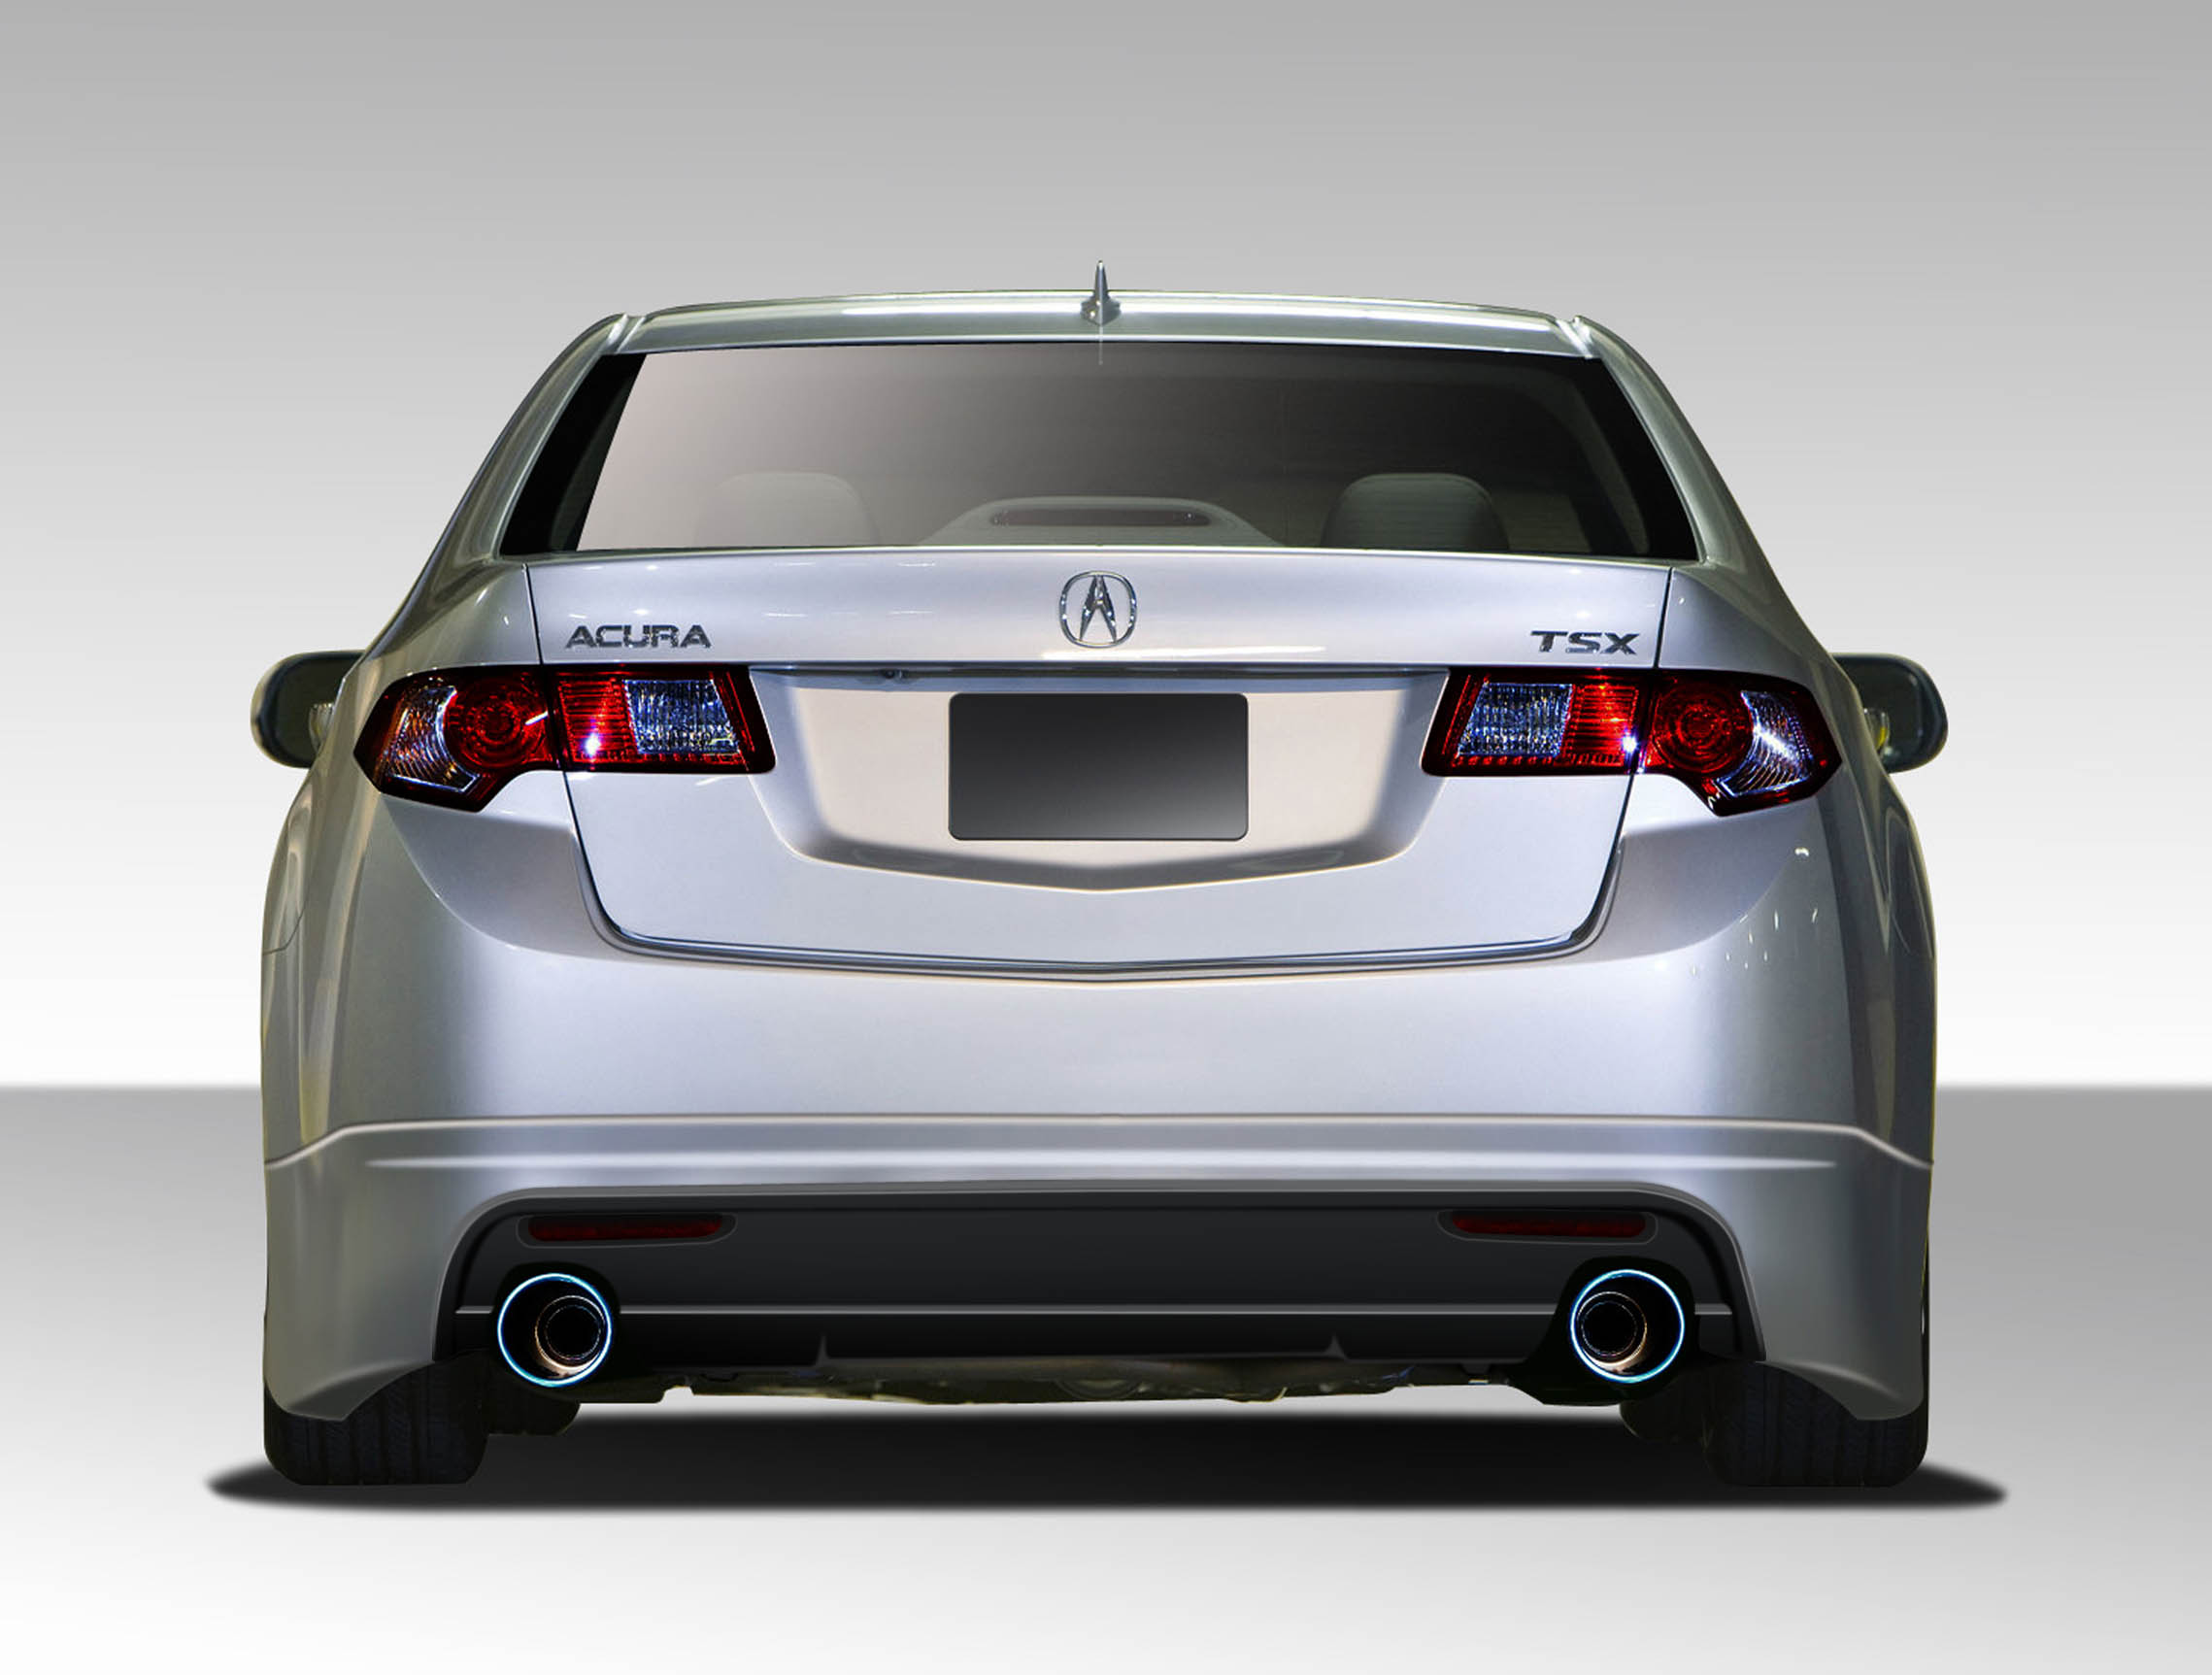 2009 2010 acura tsx duraflex type m rear lip under spoiler air dam